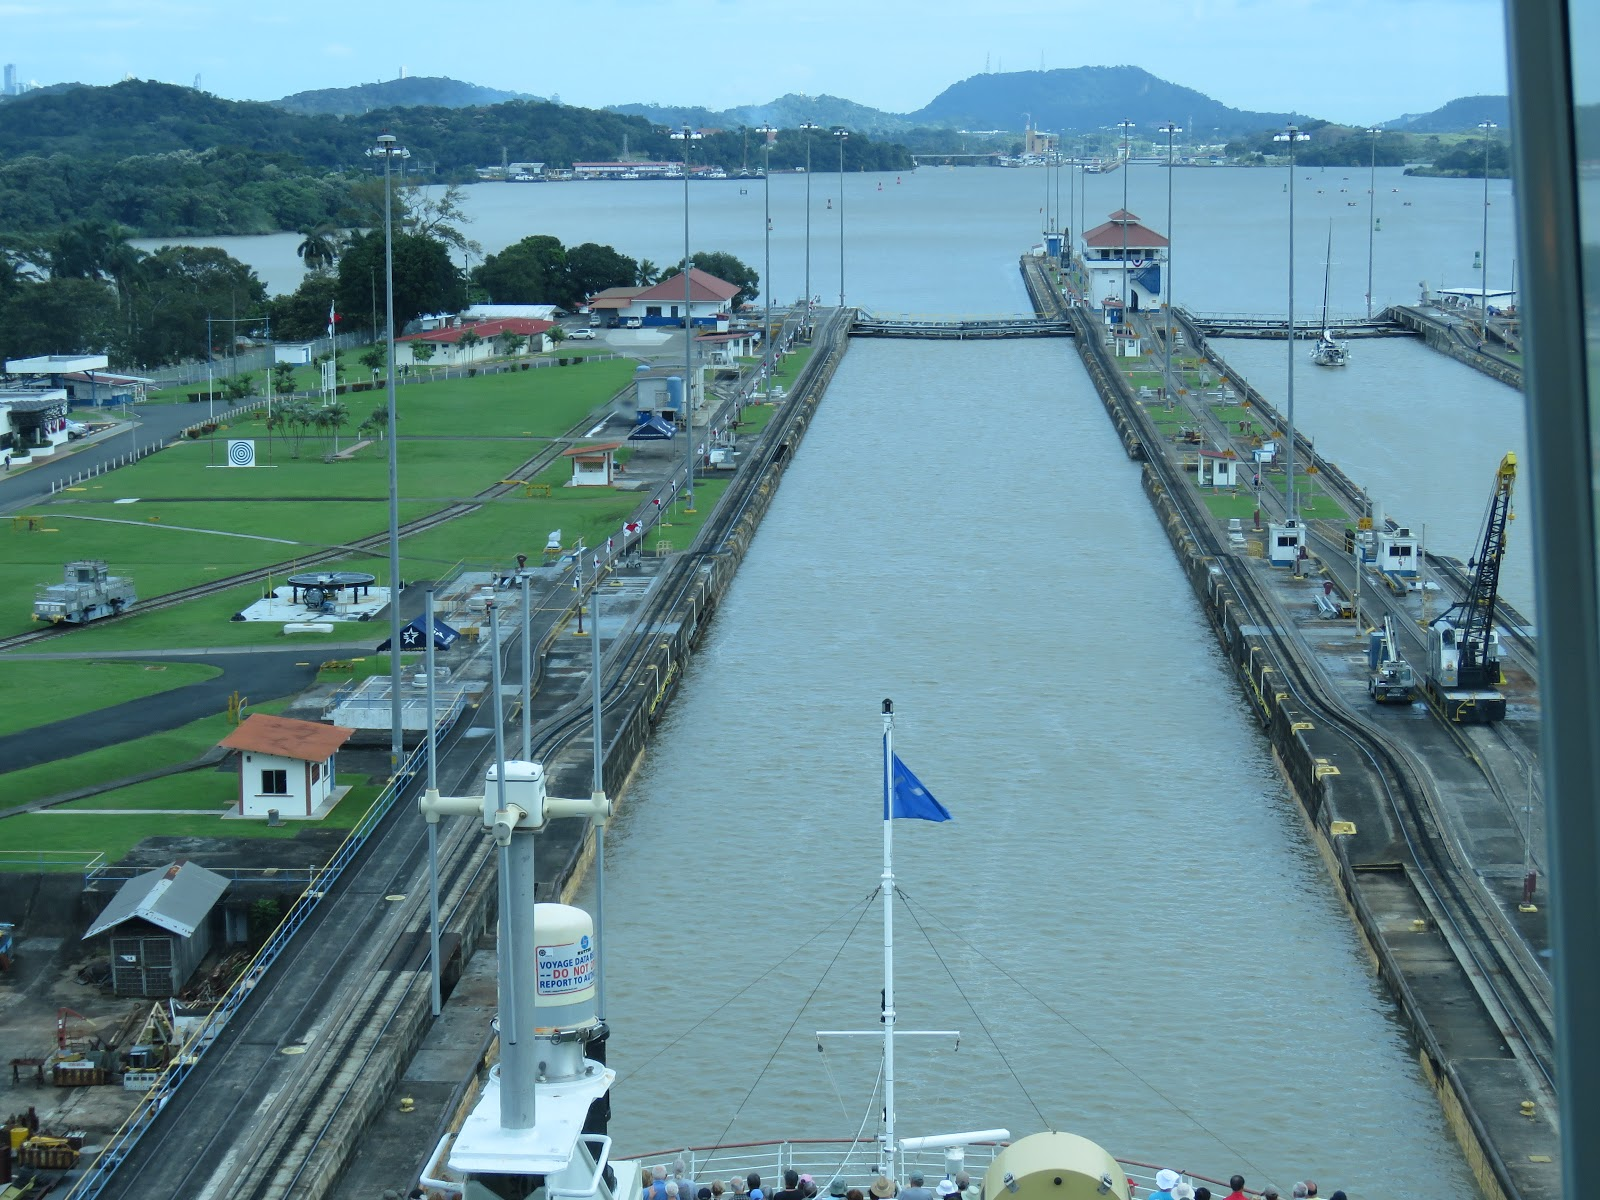 The Miraflores Locks in the Panama Canal